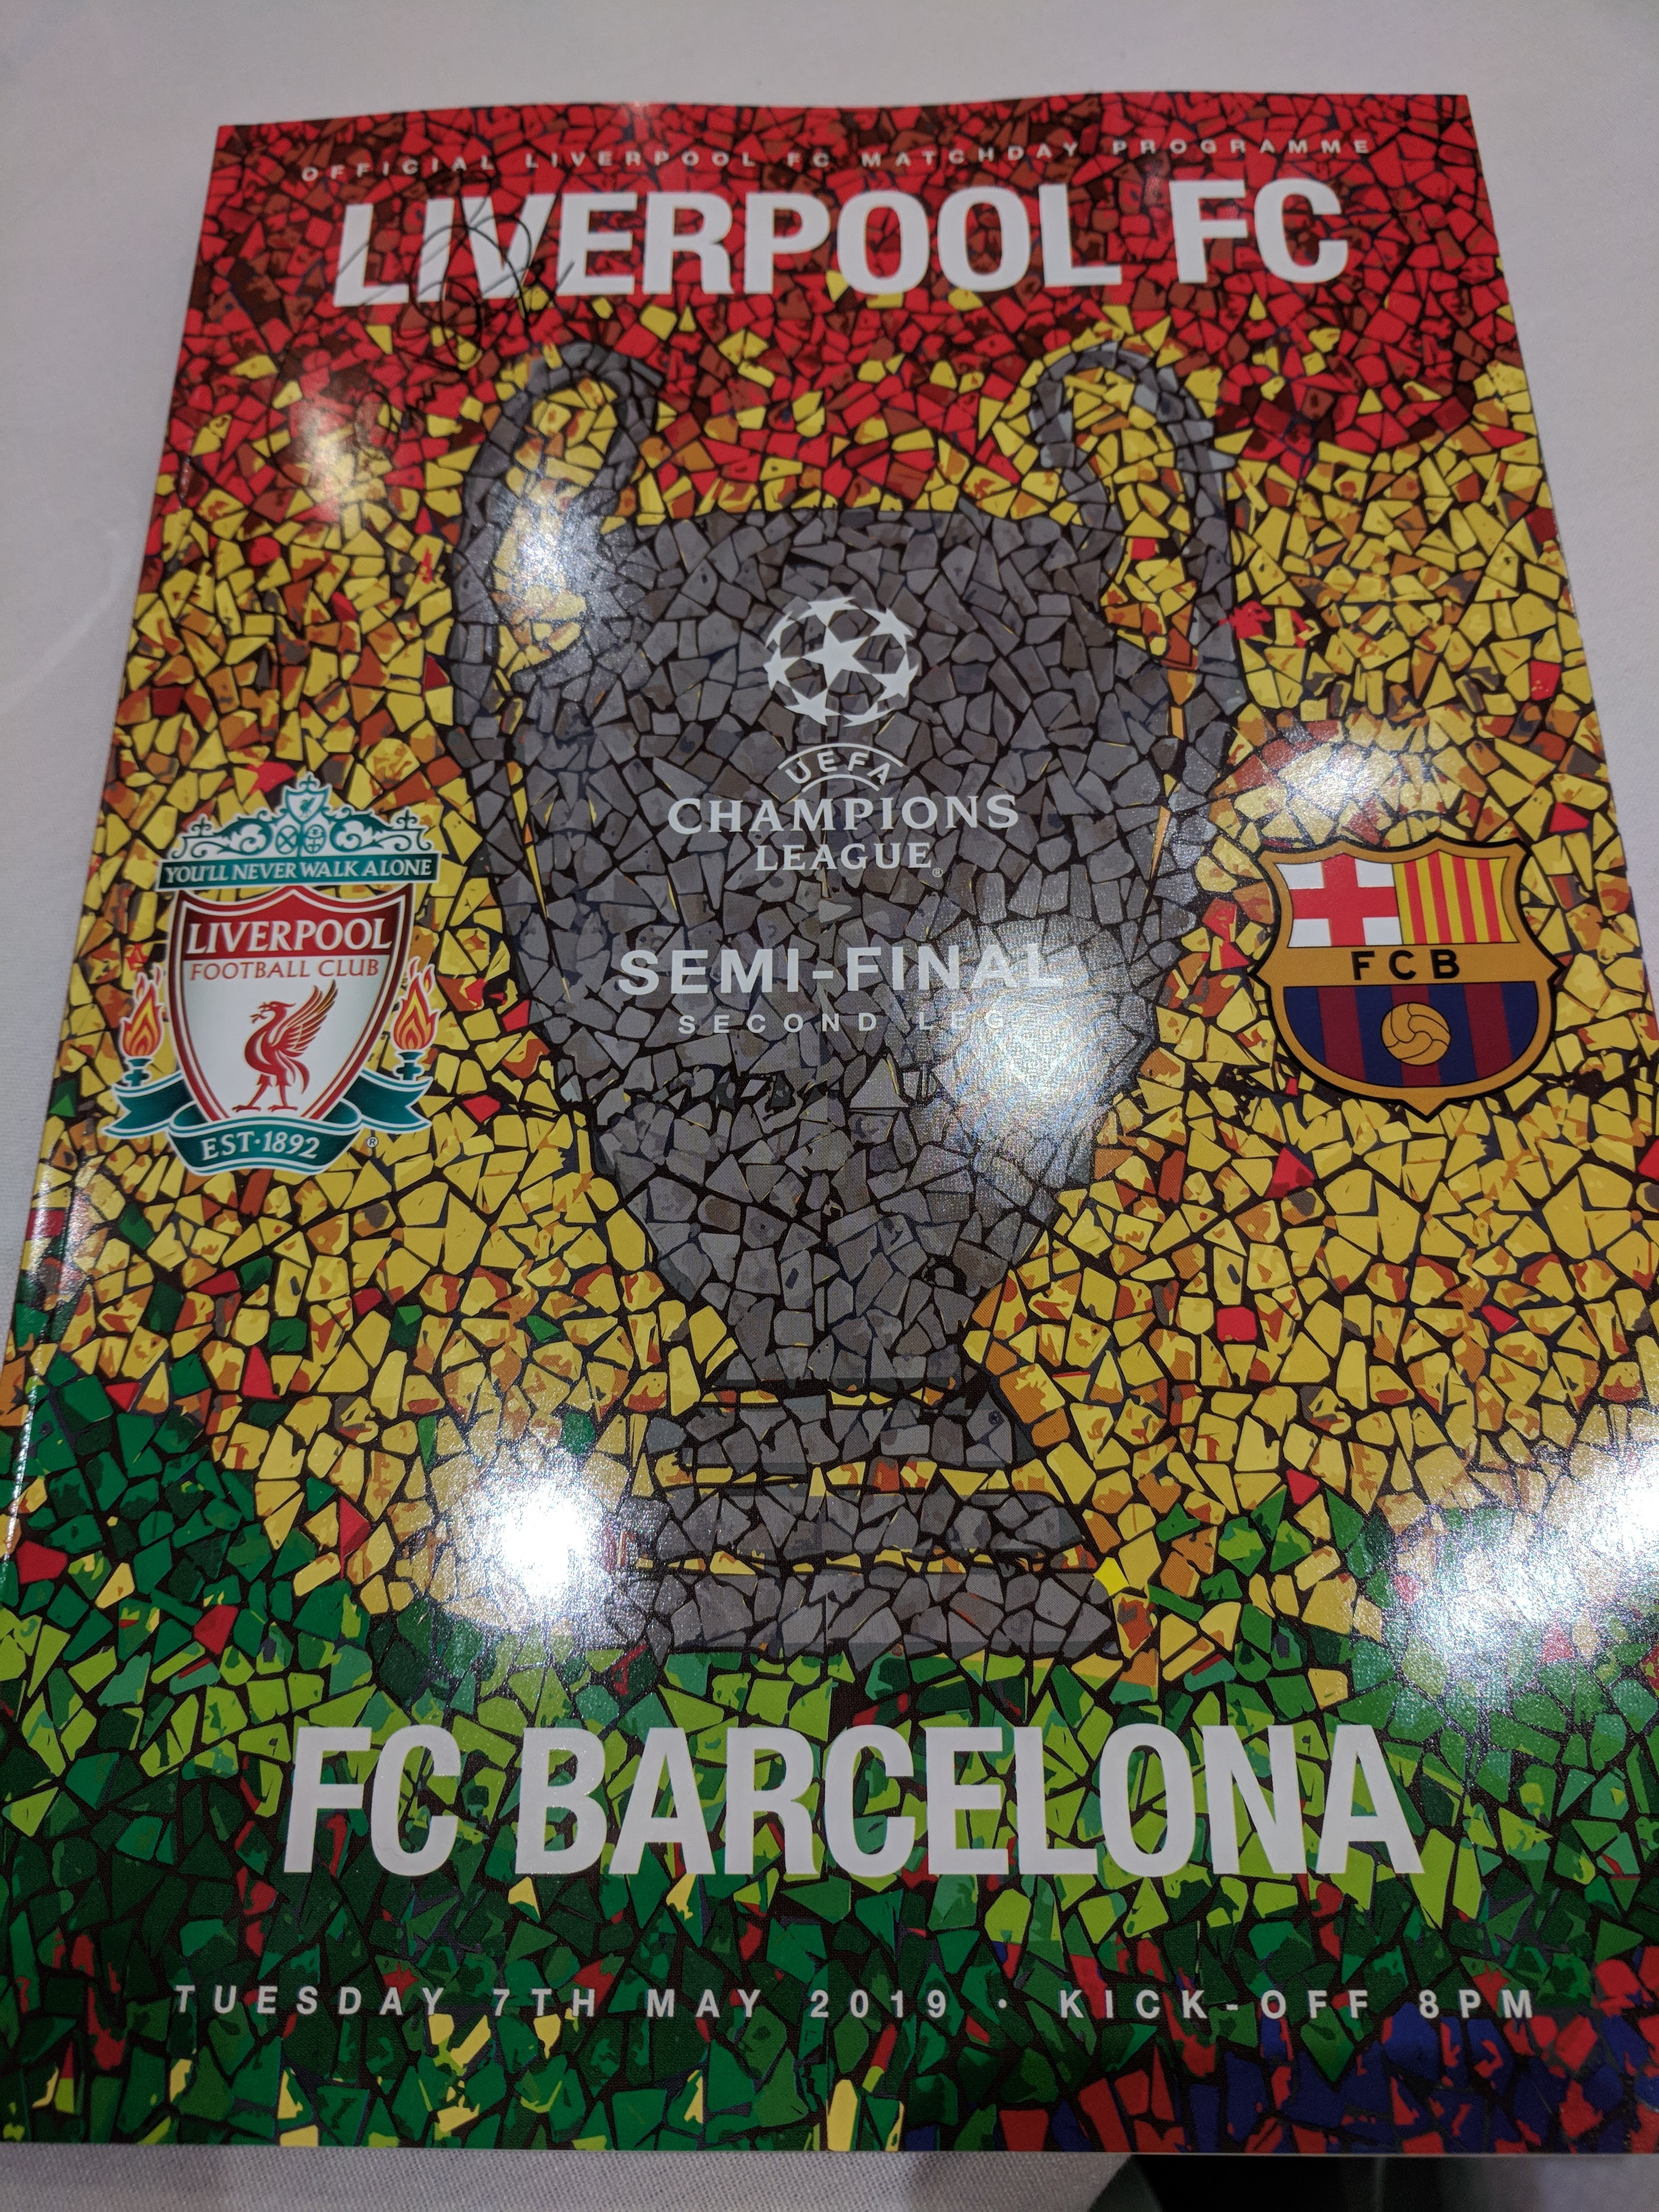 A picture of the actual program from the game Liverpool beat Barcelona.